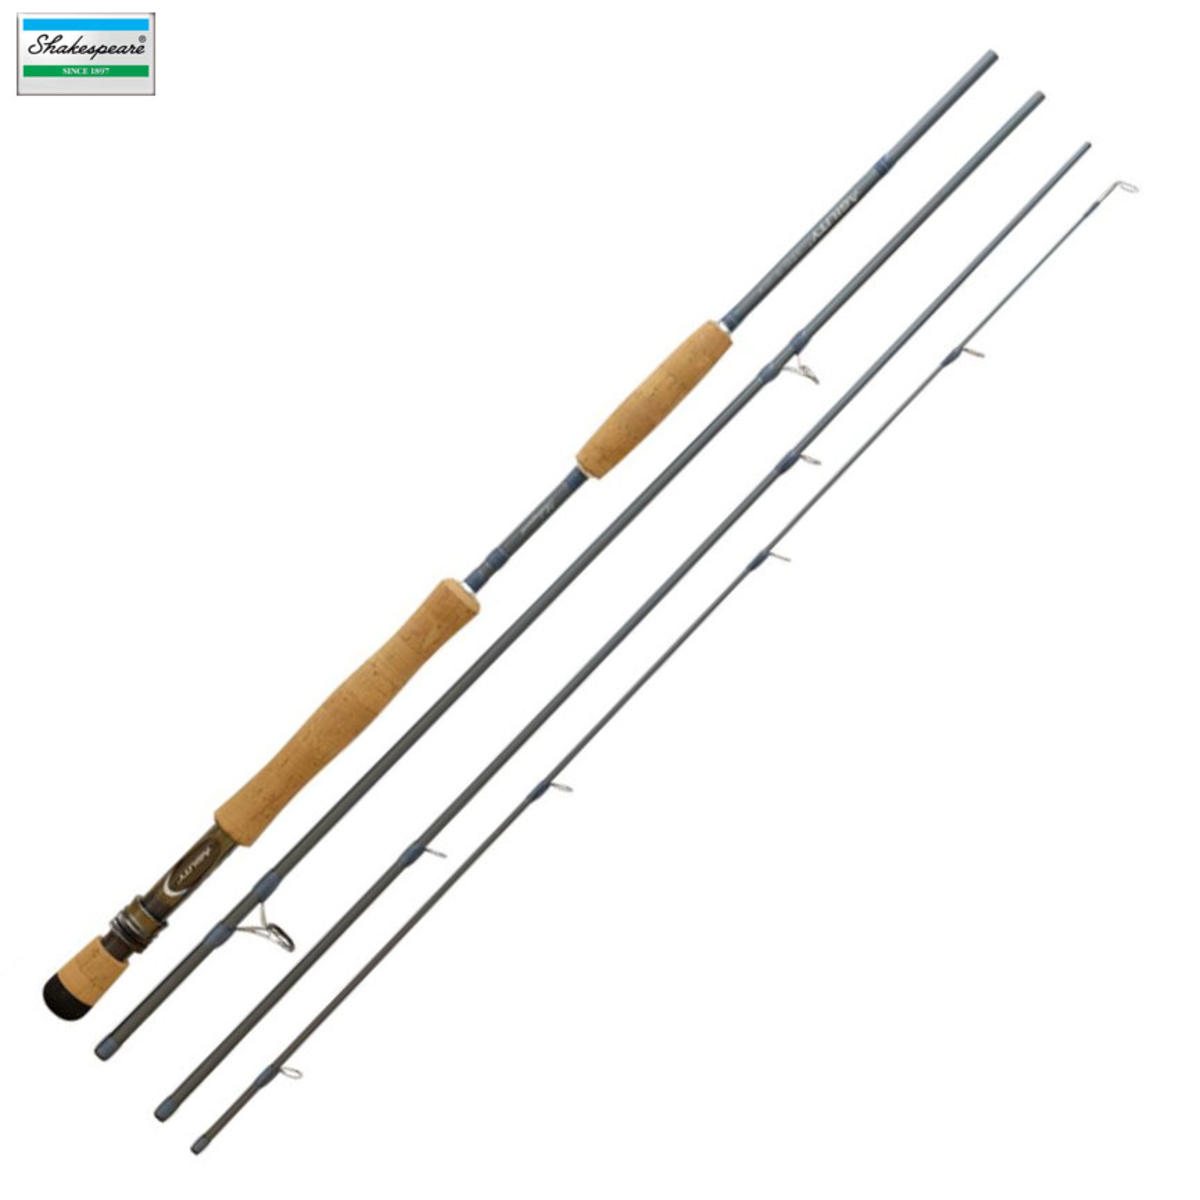 New Shakespeare Agility 2 XPS Fly Fishing Rod 9ft #10 4pc 1381010